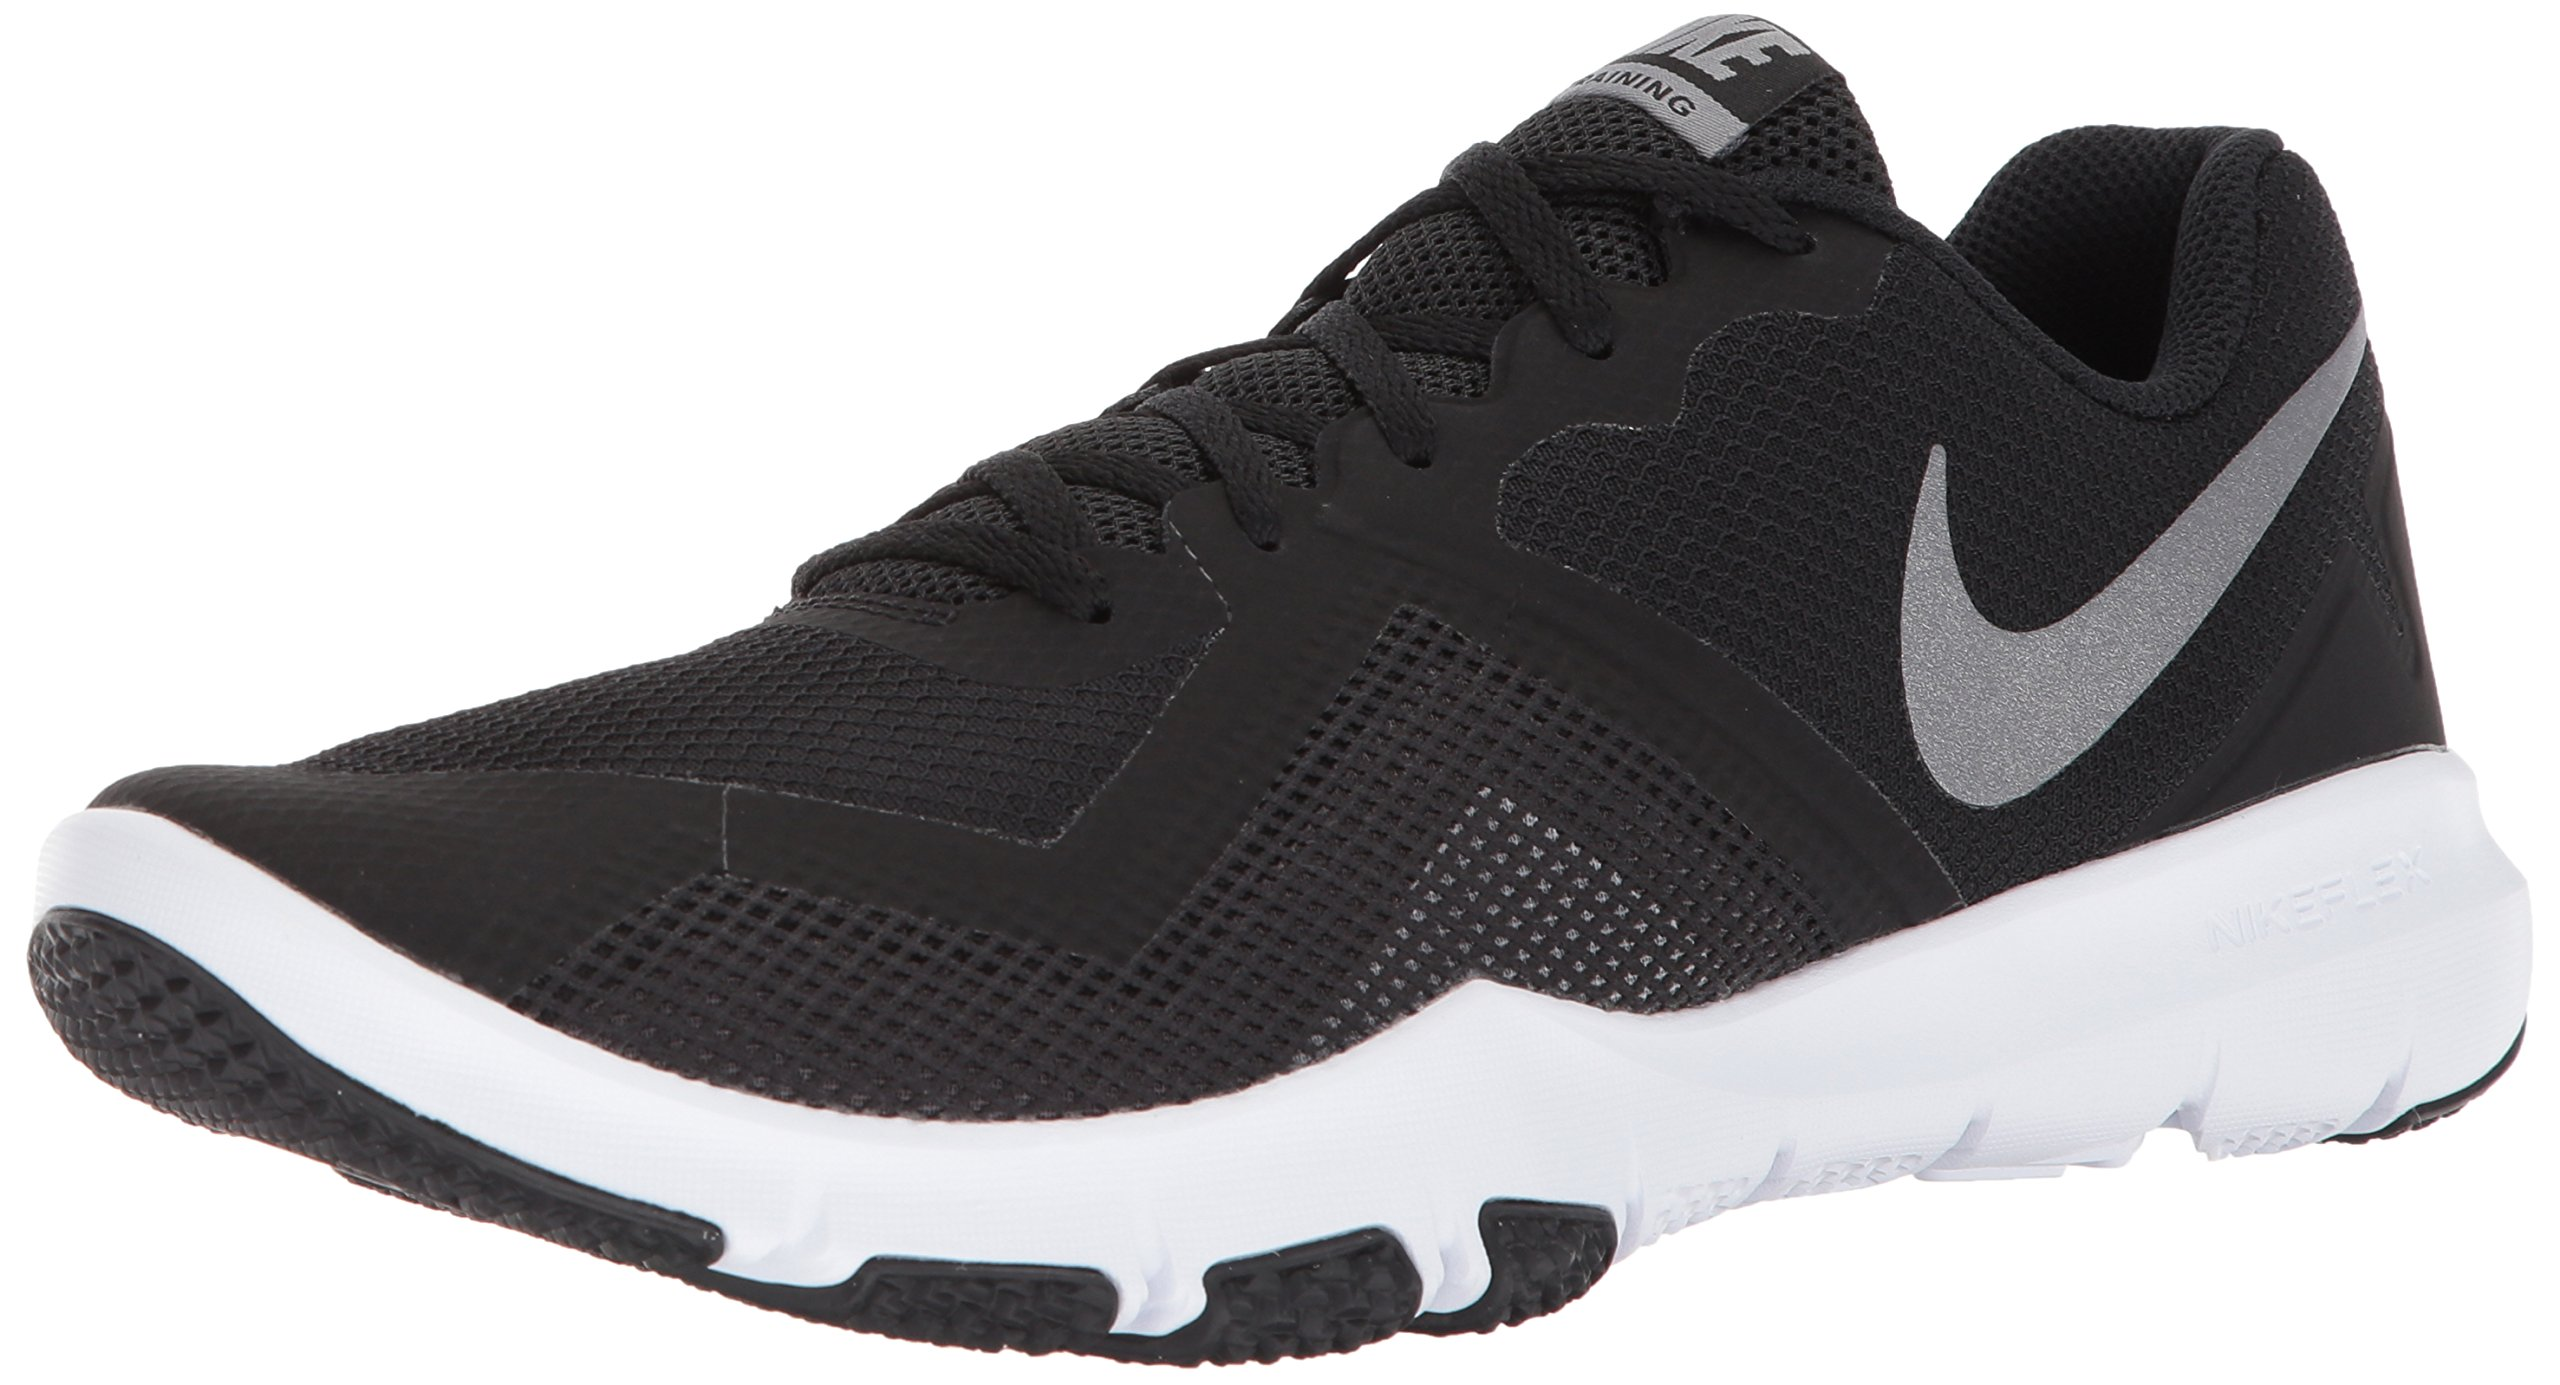 NIKE Men's Flex Control II Cross Trainer, Black/Metallic Cool Grey-Cool Grey-White, 11.0 Regular US by NIKE